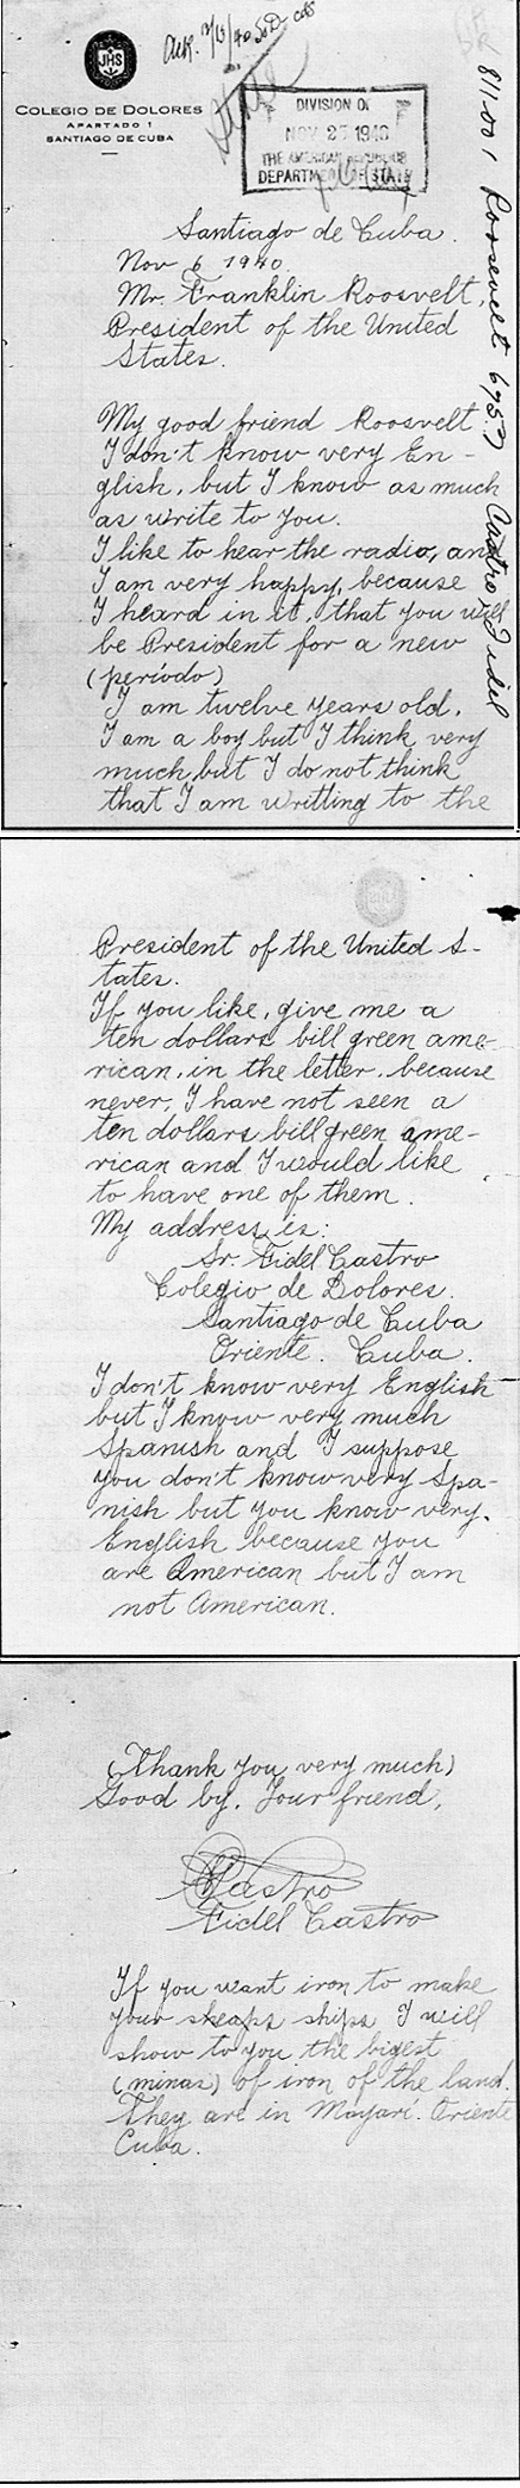 Fidel Castro sent this letter to the then-president of the United States of America, Franklin D. Roosevelt, when he was 14. He speaks of his approval of Roosevelt's presidency, asks the President for $10, and finishes the letter by offering to reveal the whereabouts of Cuba's largest iron mines.